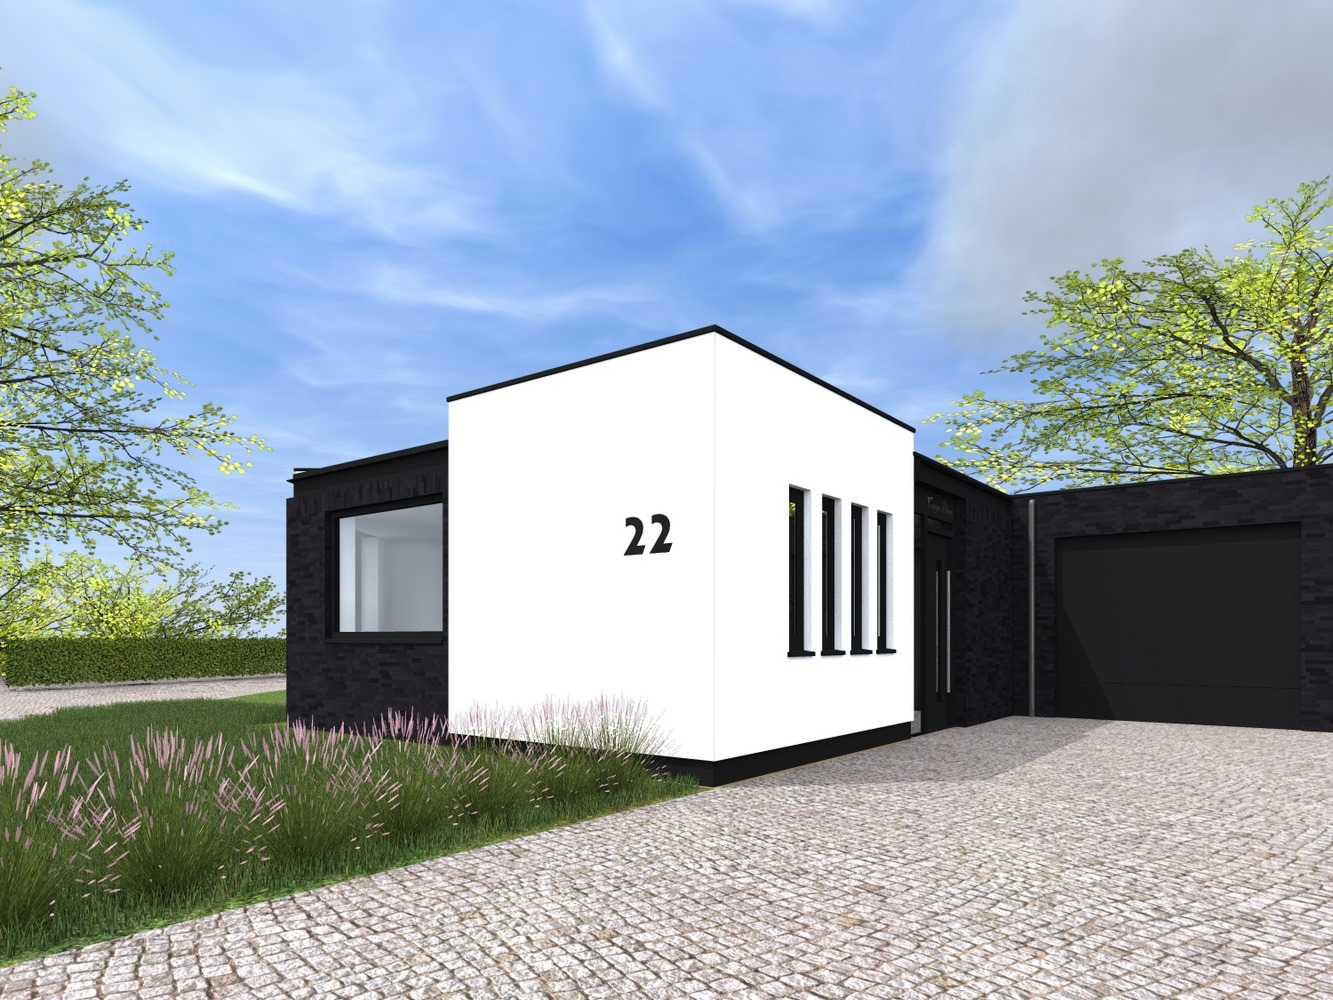 Top moderne bungalow architectuur hd58 belbin info for Moderne bungalow architectuur